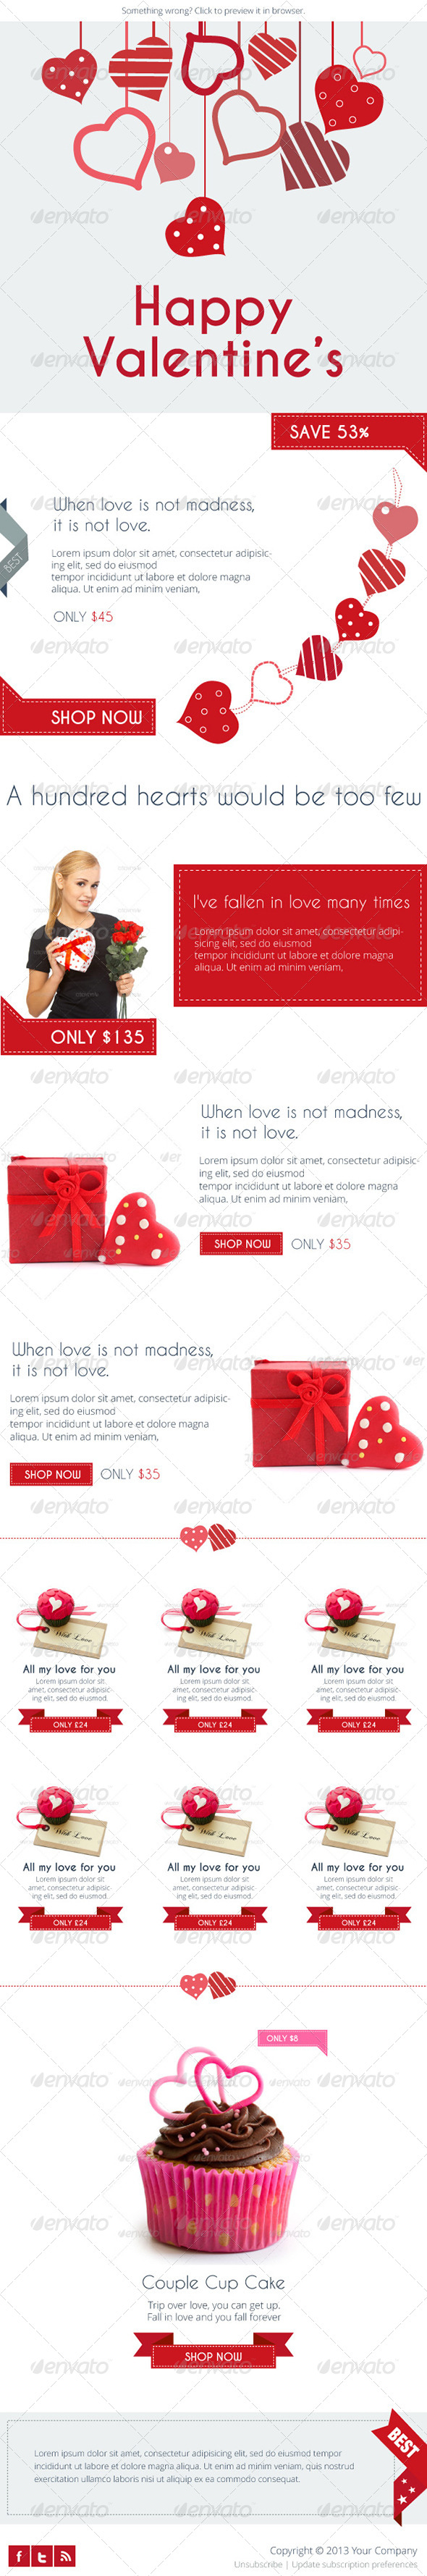 Flat Valentine's E-newsletter Template - E-newsletters Web Elements